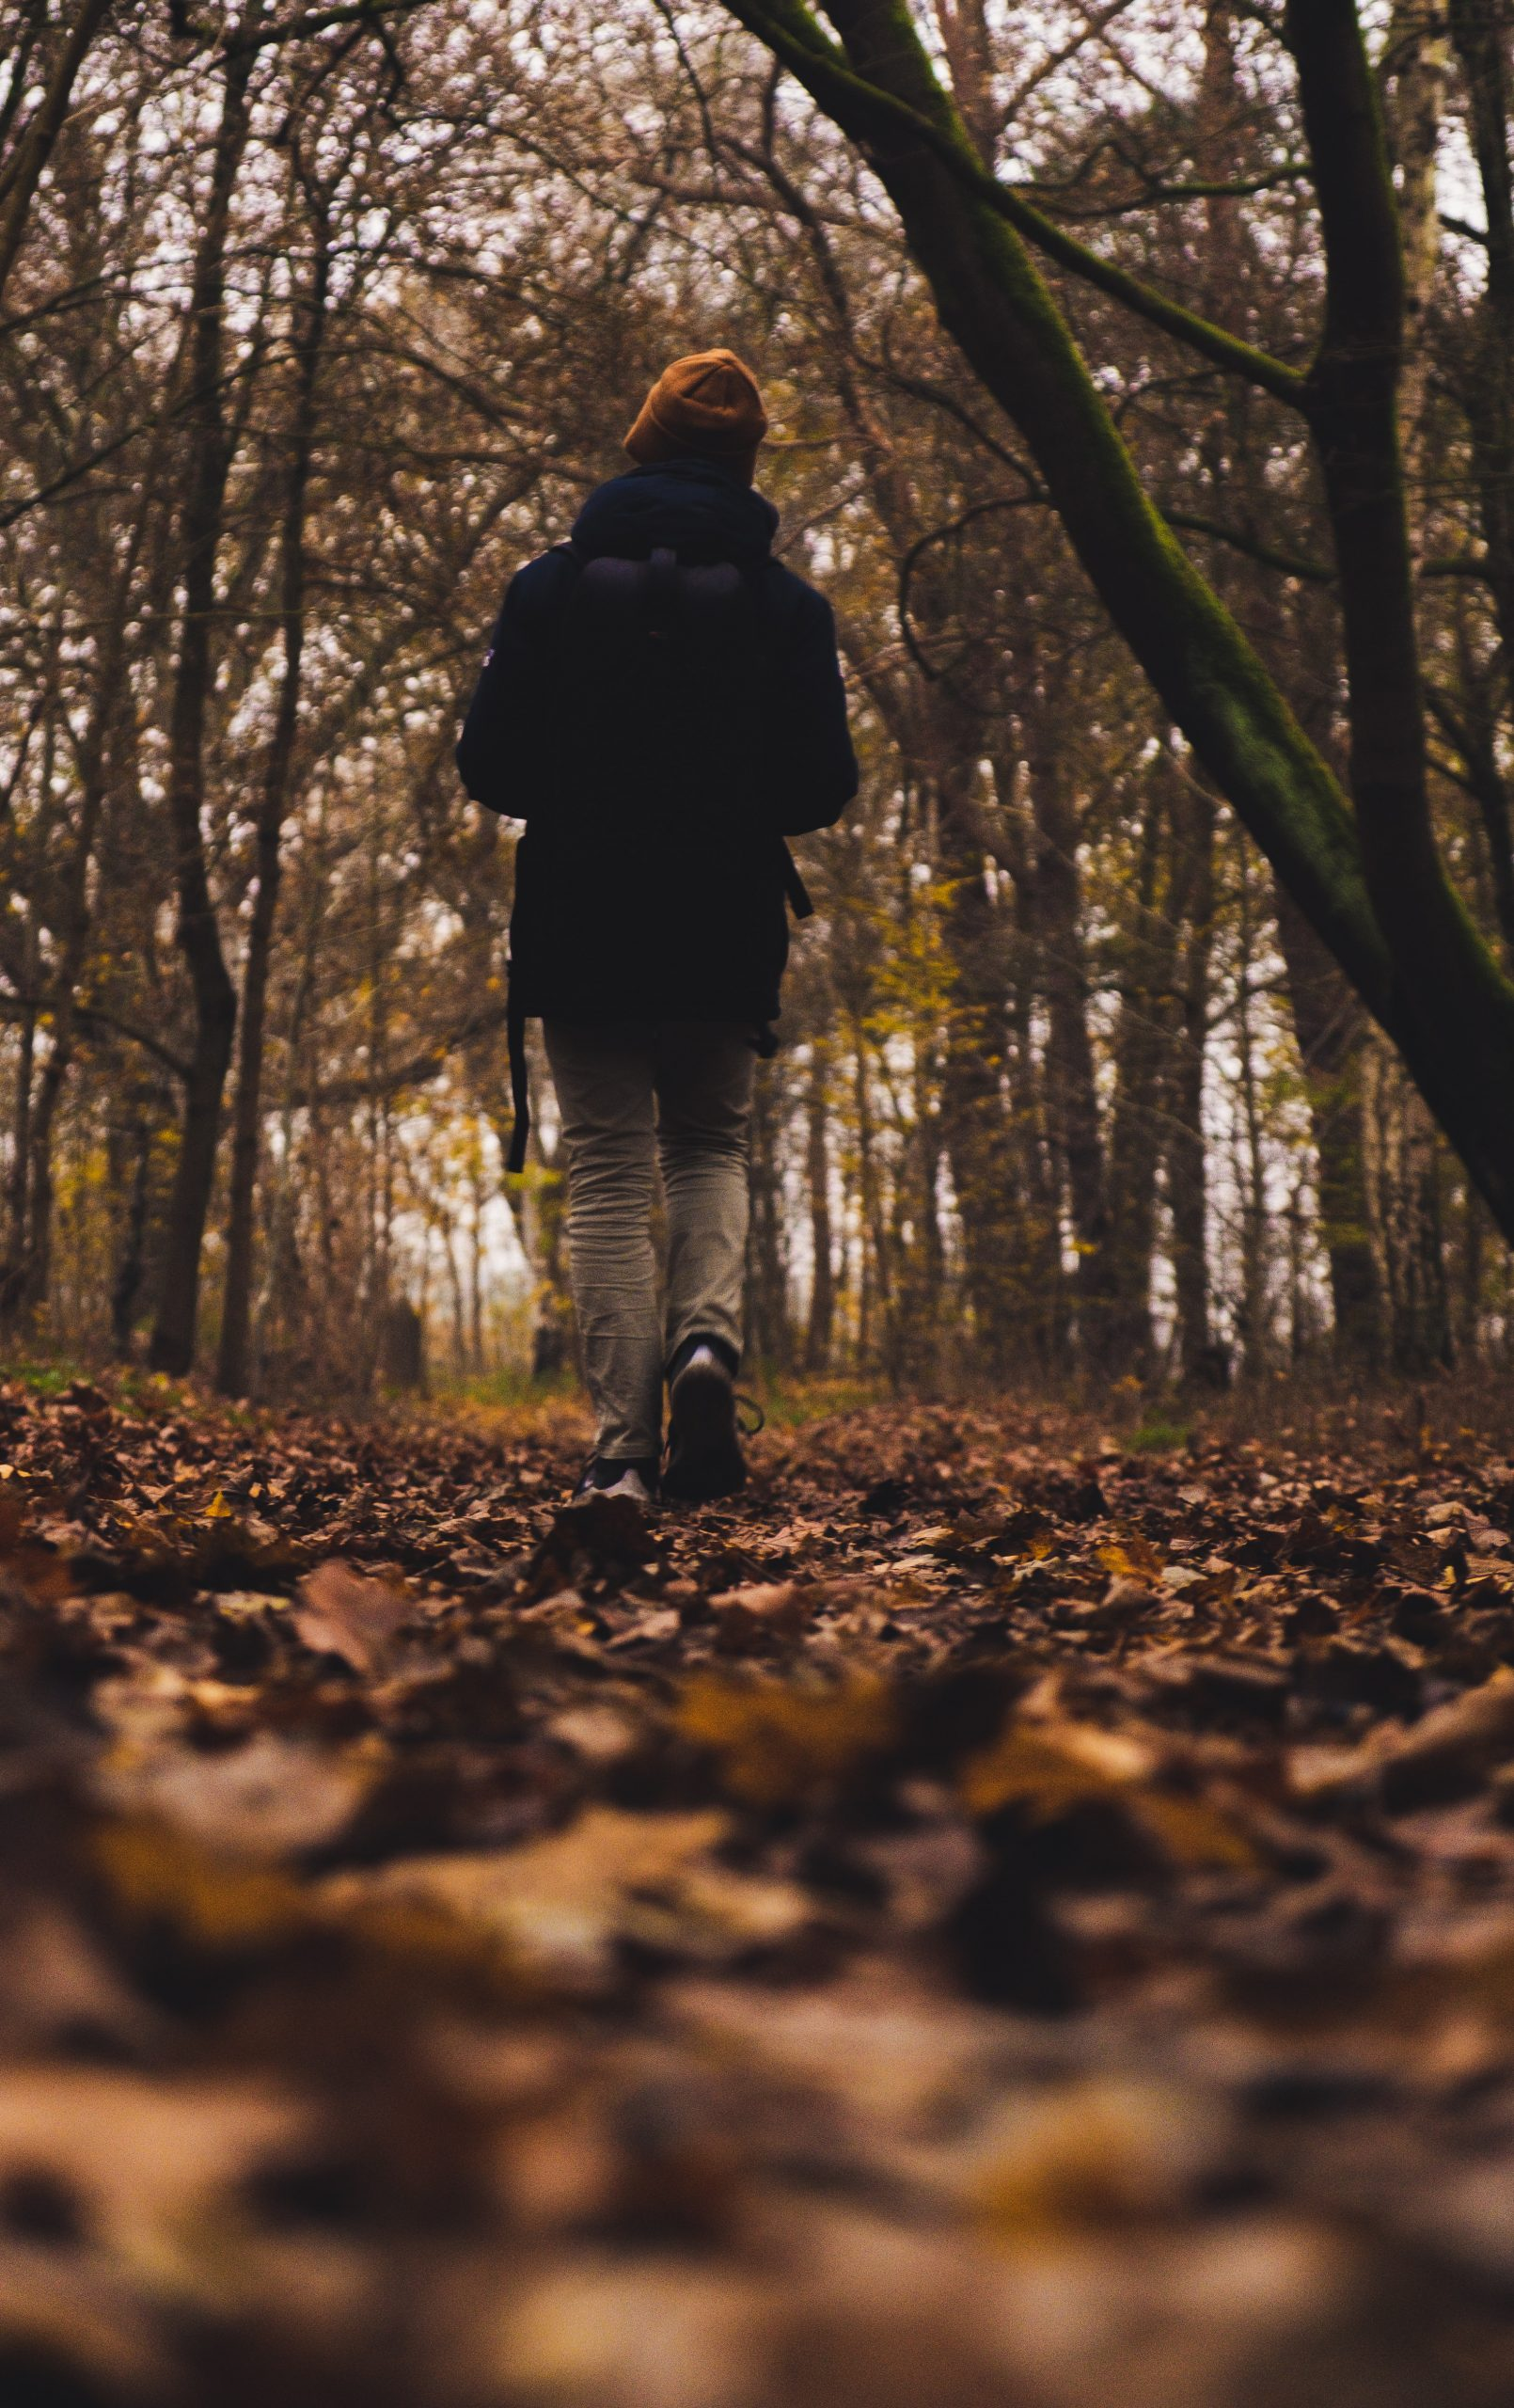 person walking in forest during daytime